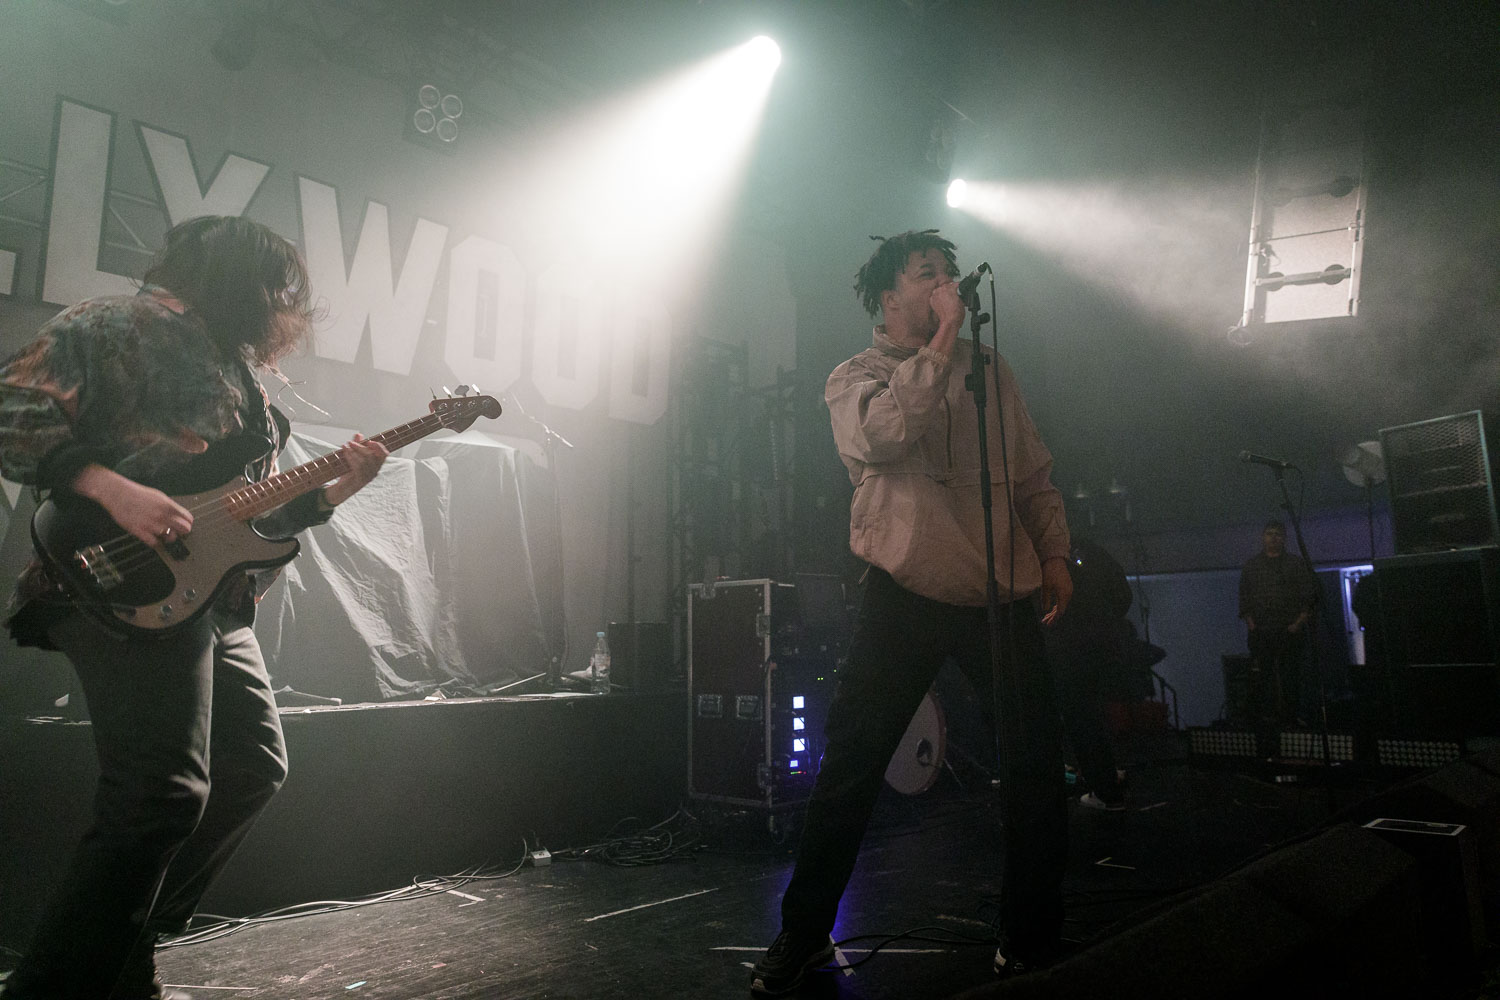 Loathe at Mountford Hall in Liverpool on April 27th 2019